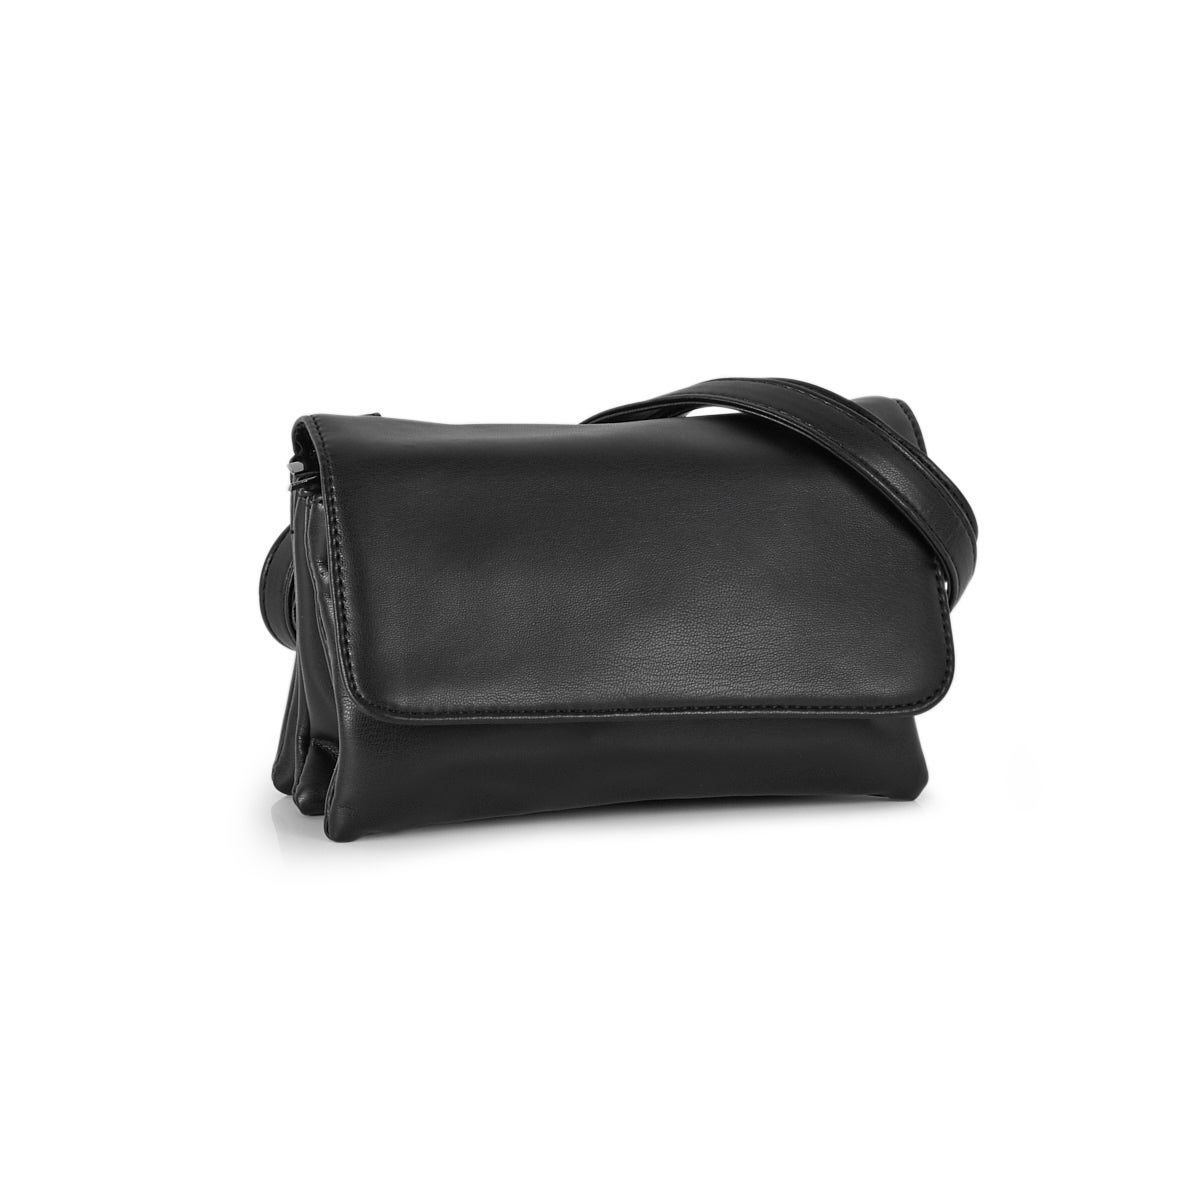 Lds Nappa Smalls black crossbody bag